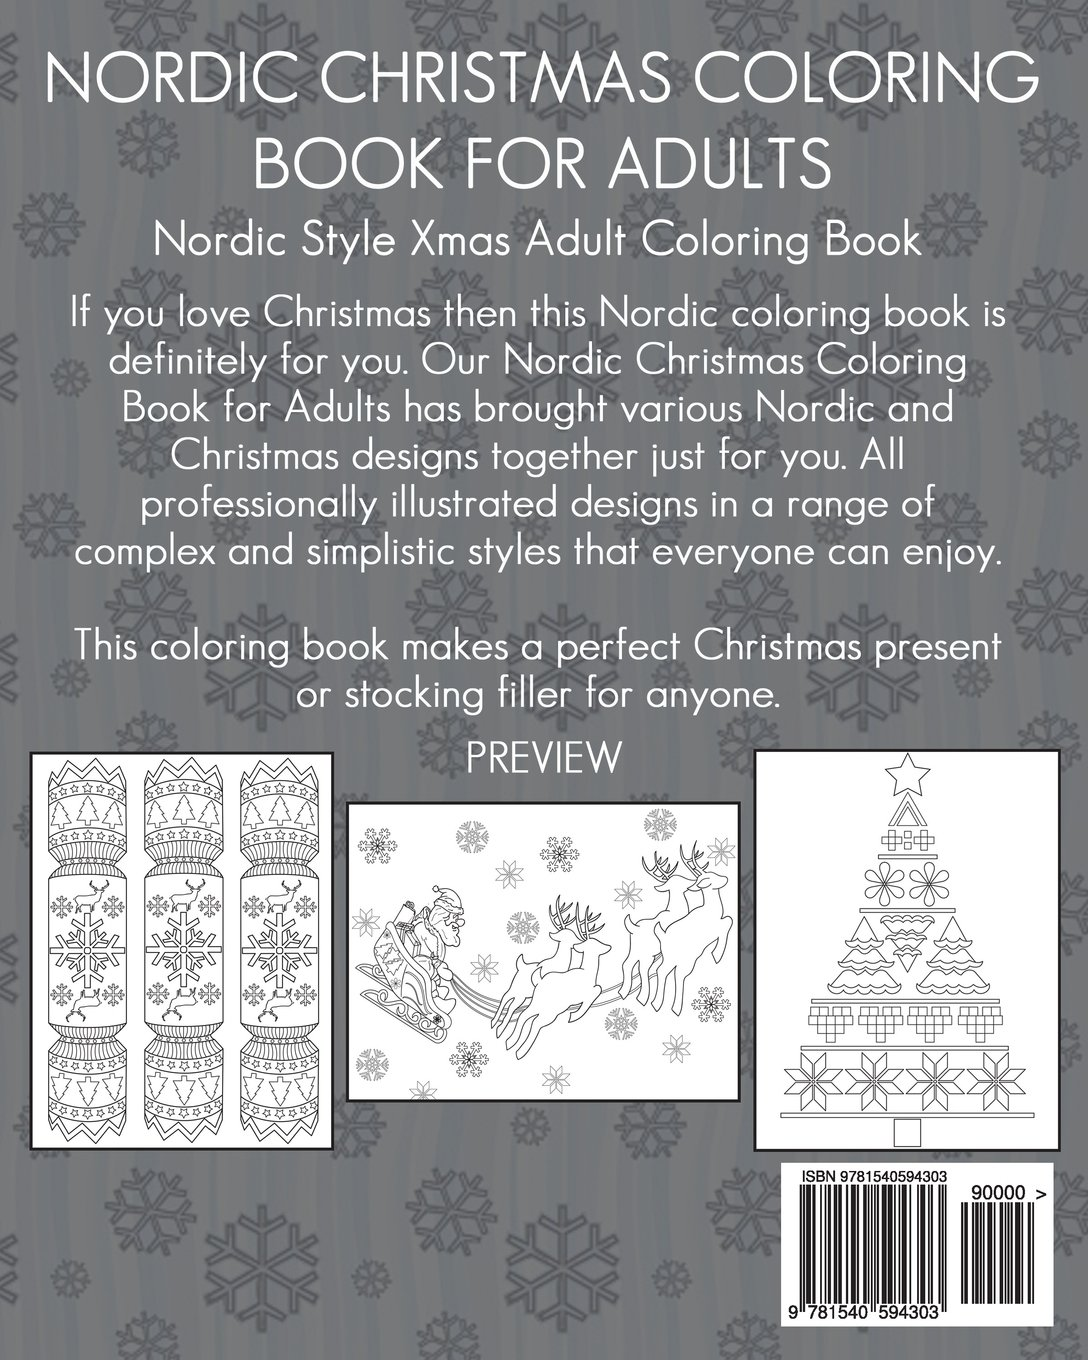 Amazon Com Nordic Christmas Coloring Book For Adults Nordic Style Xmas Adult Coloring Book Featuring An Array Of Complex And Simplistic Images 9781540594303 People The Coloring Book Books